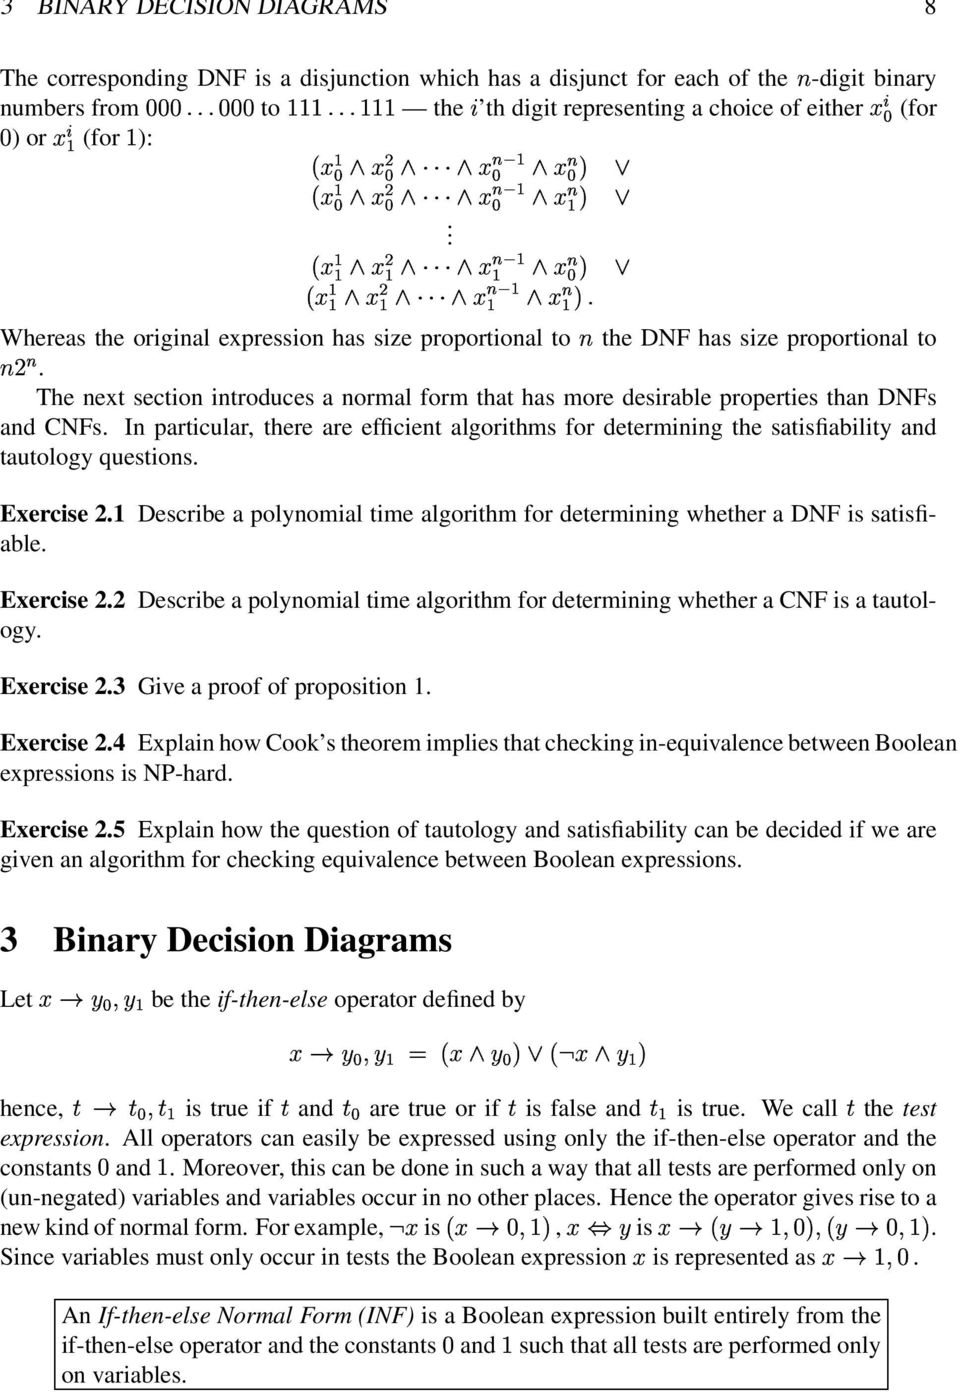 next section introduces a normal form that has more desirable properties than DNFs and CNFs In particular, there are efficient algorithms for determining the satisfiability and tautology questions